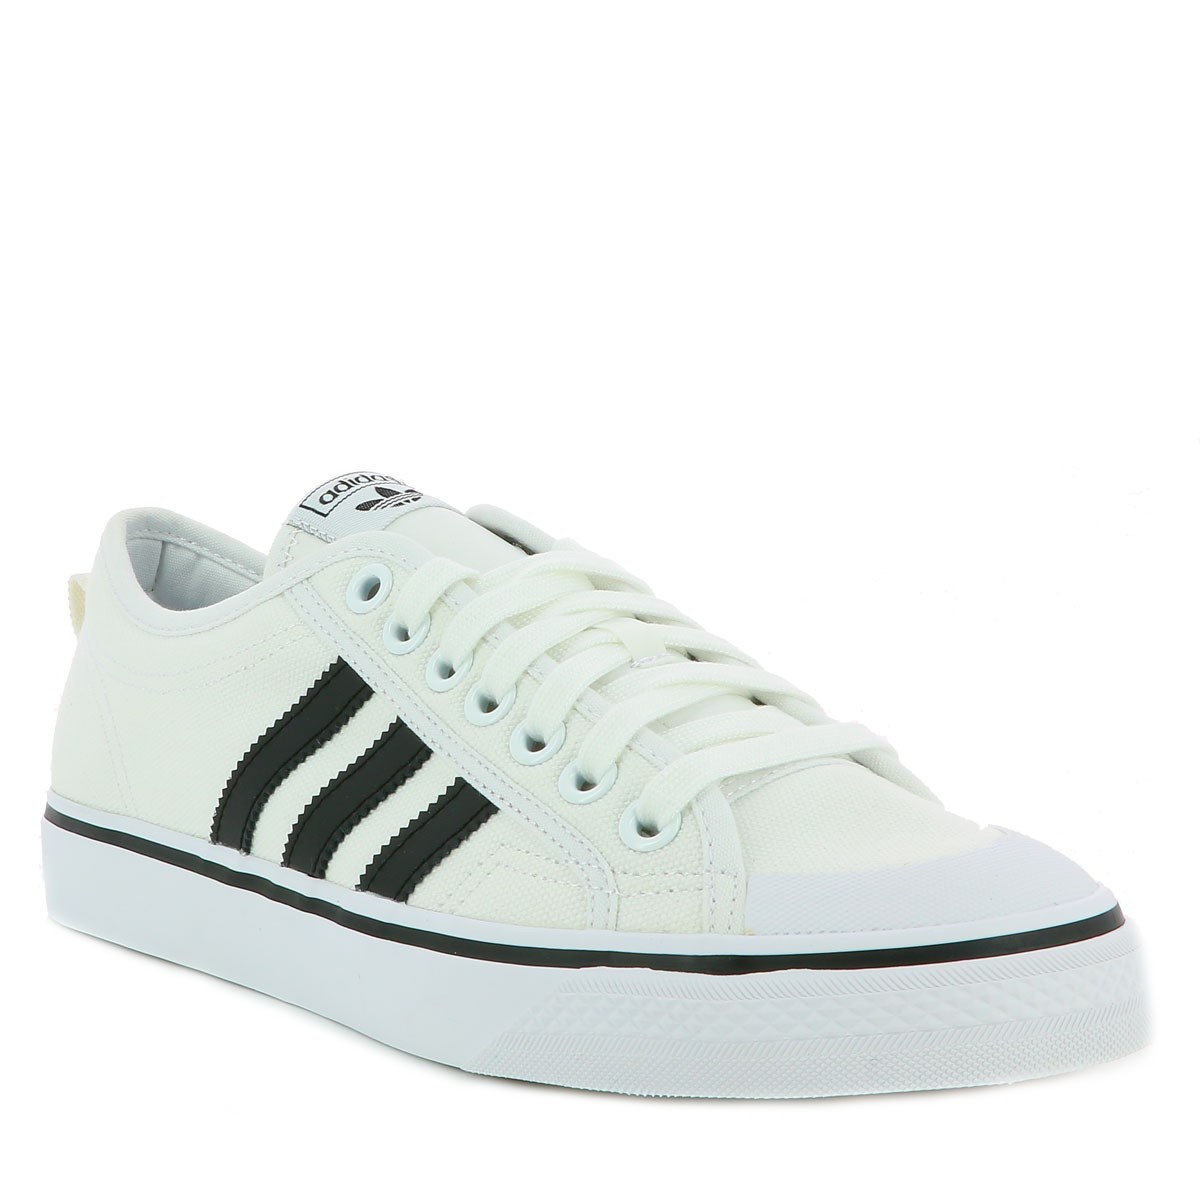 new arrival 56811 4567e Baskets homme blanc ADIDAS